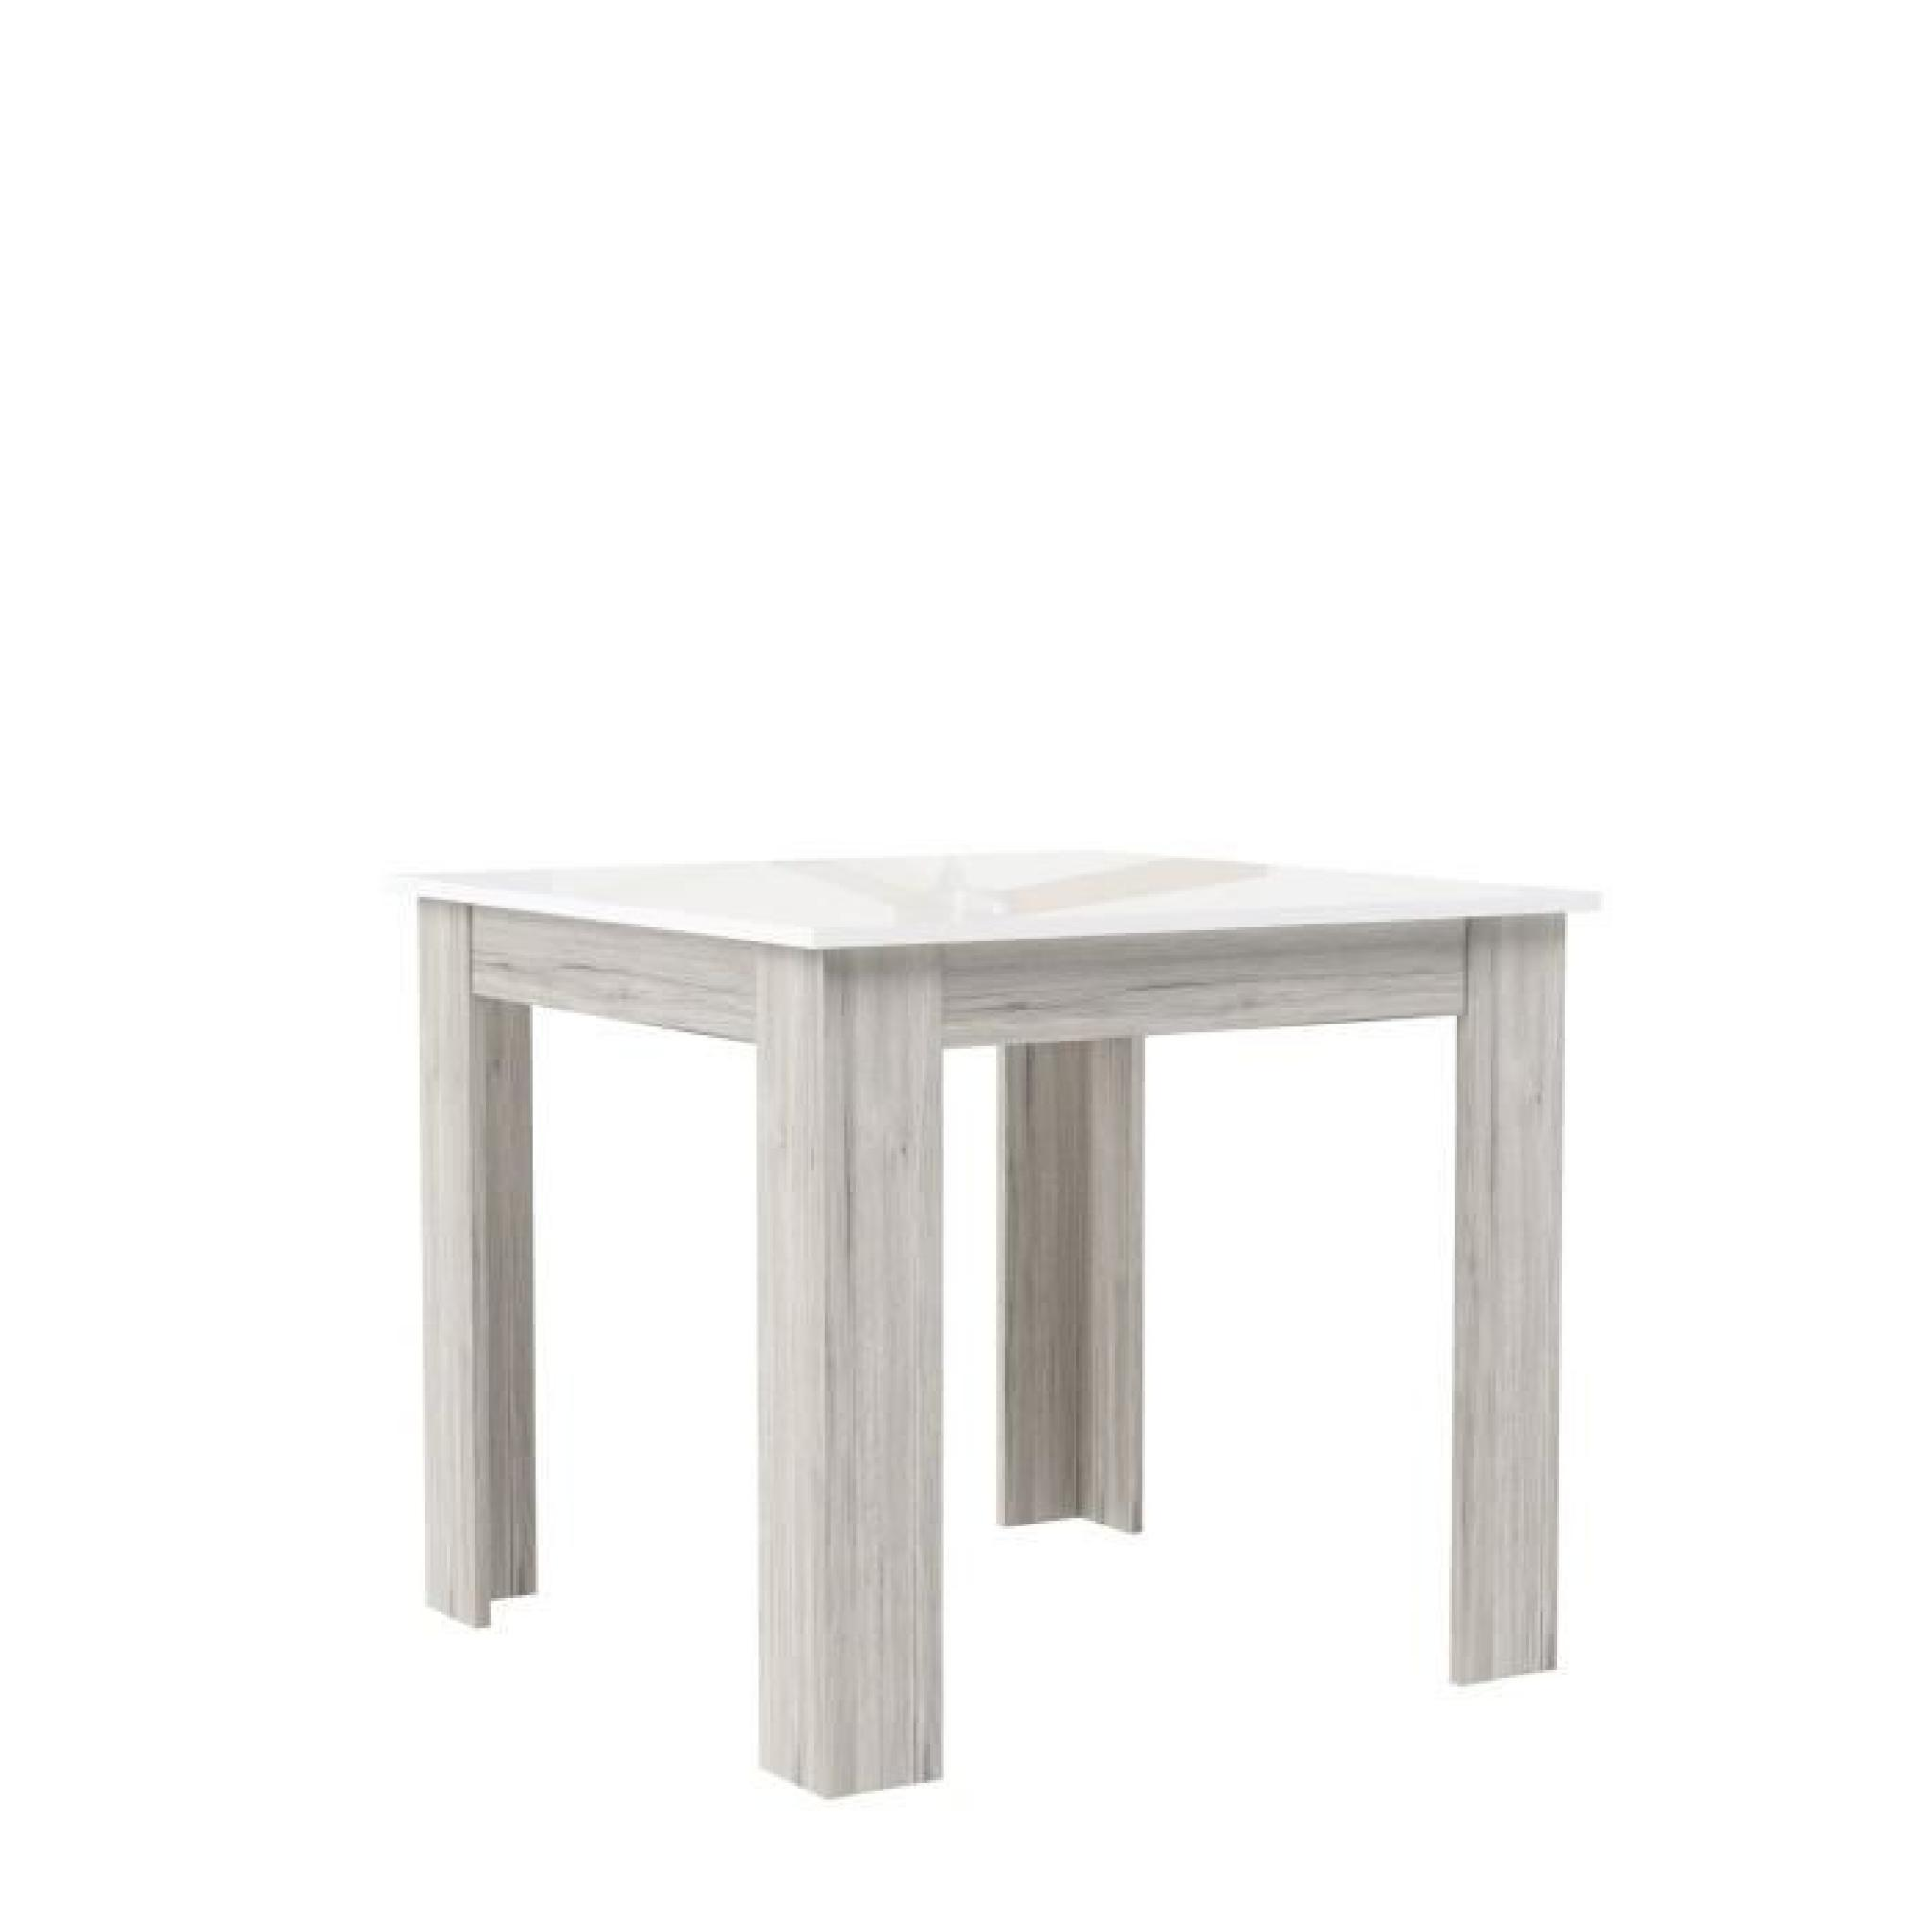 Finlandek table de bar tietti 110x110cm laqu blanc for Table de chevet laque blanc brillant